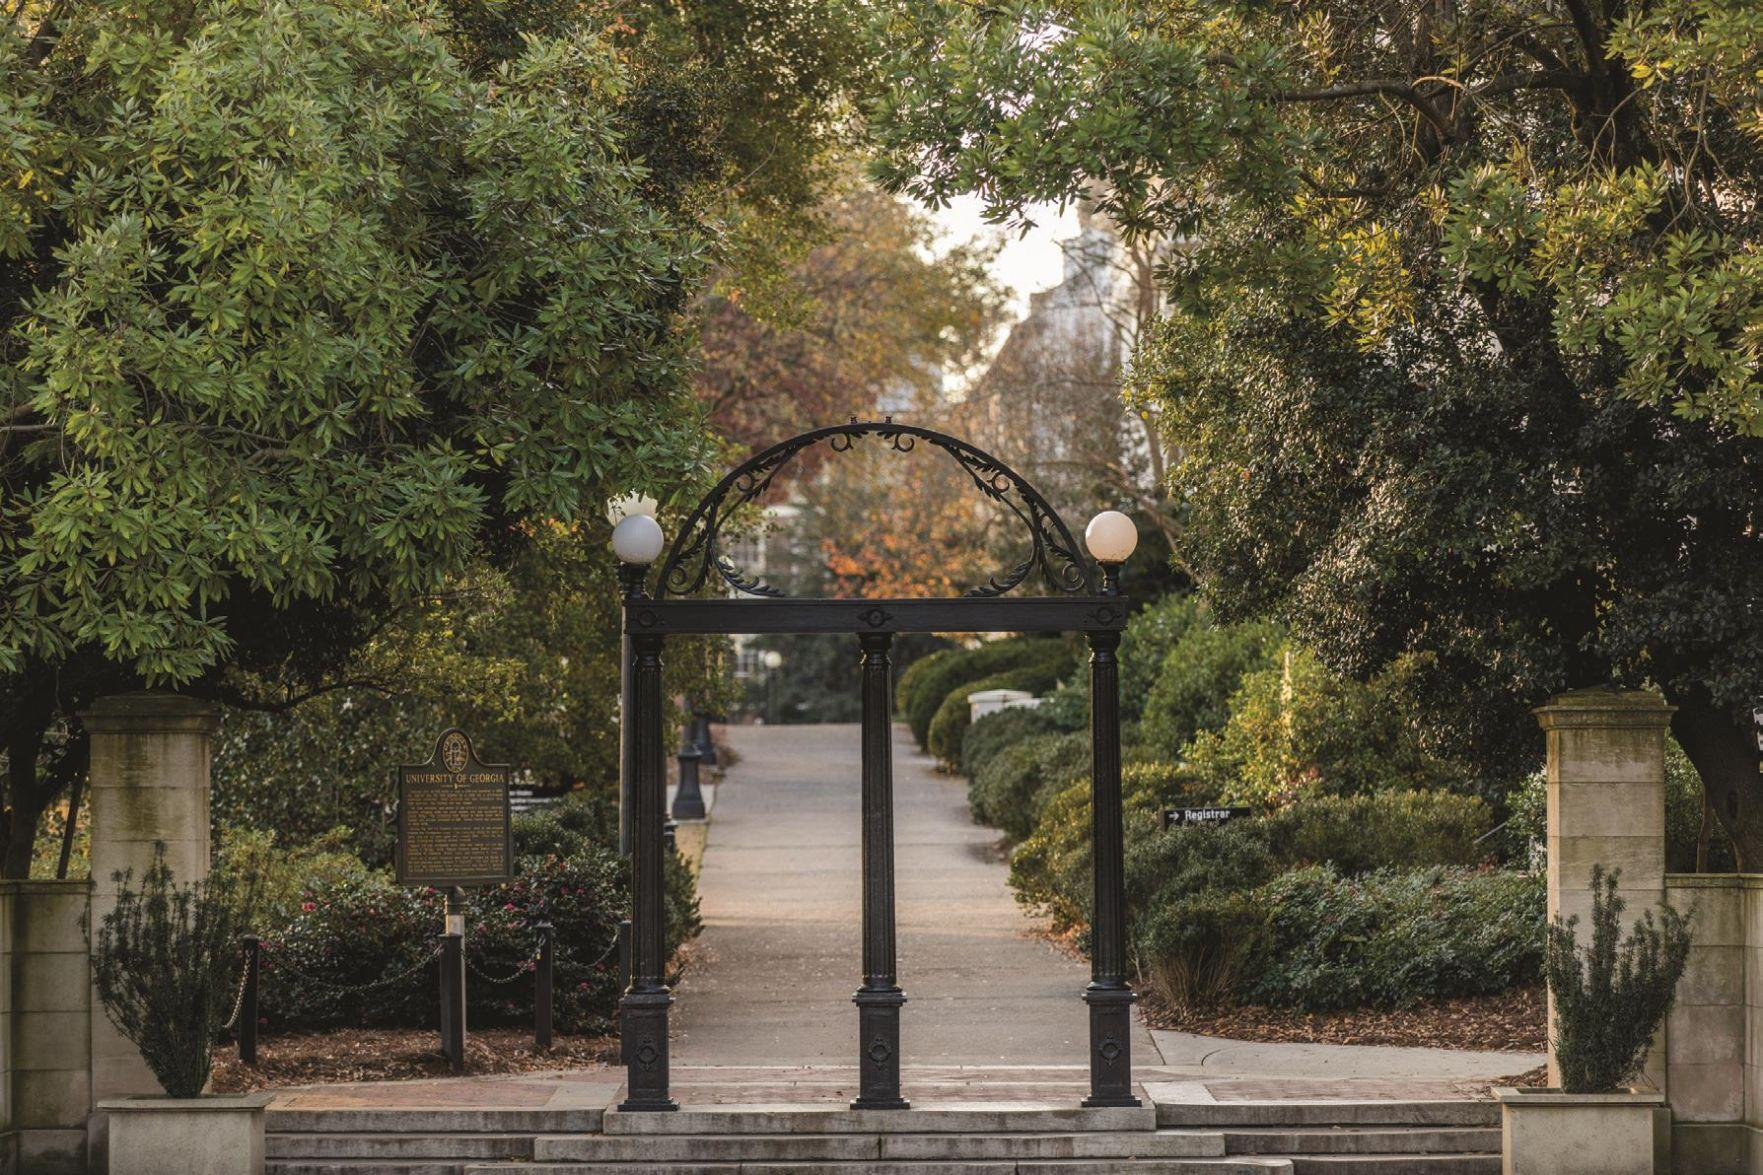 USPOULTRY funding to UGA exceeds $6.5 million